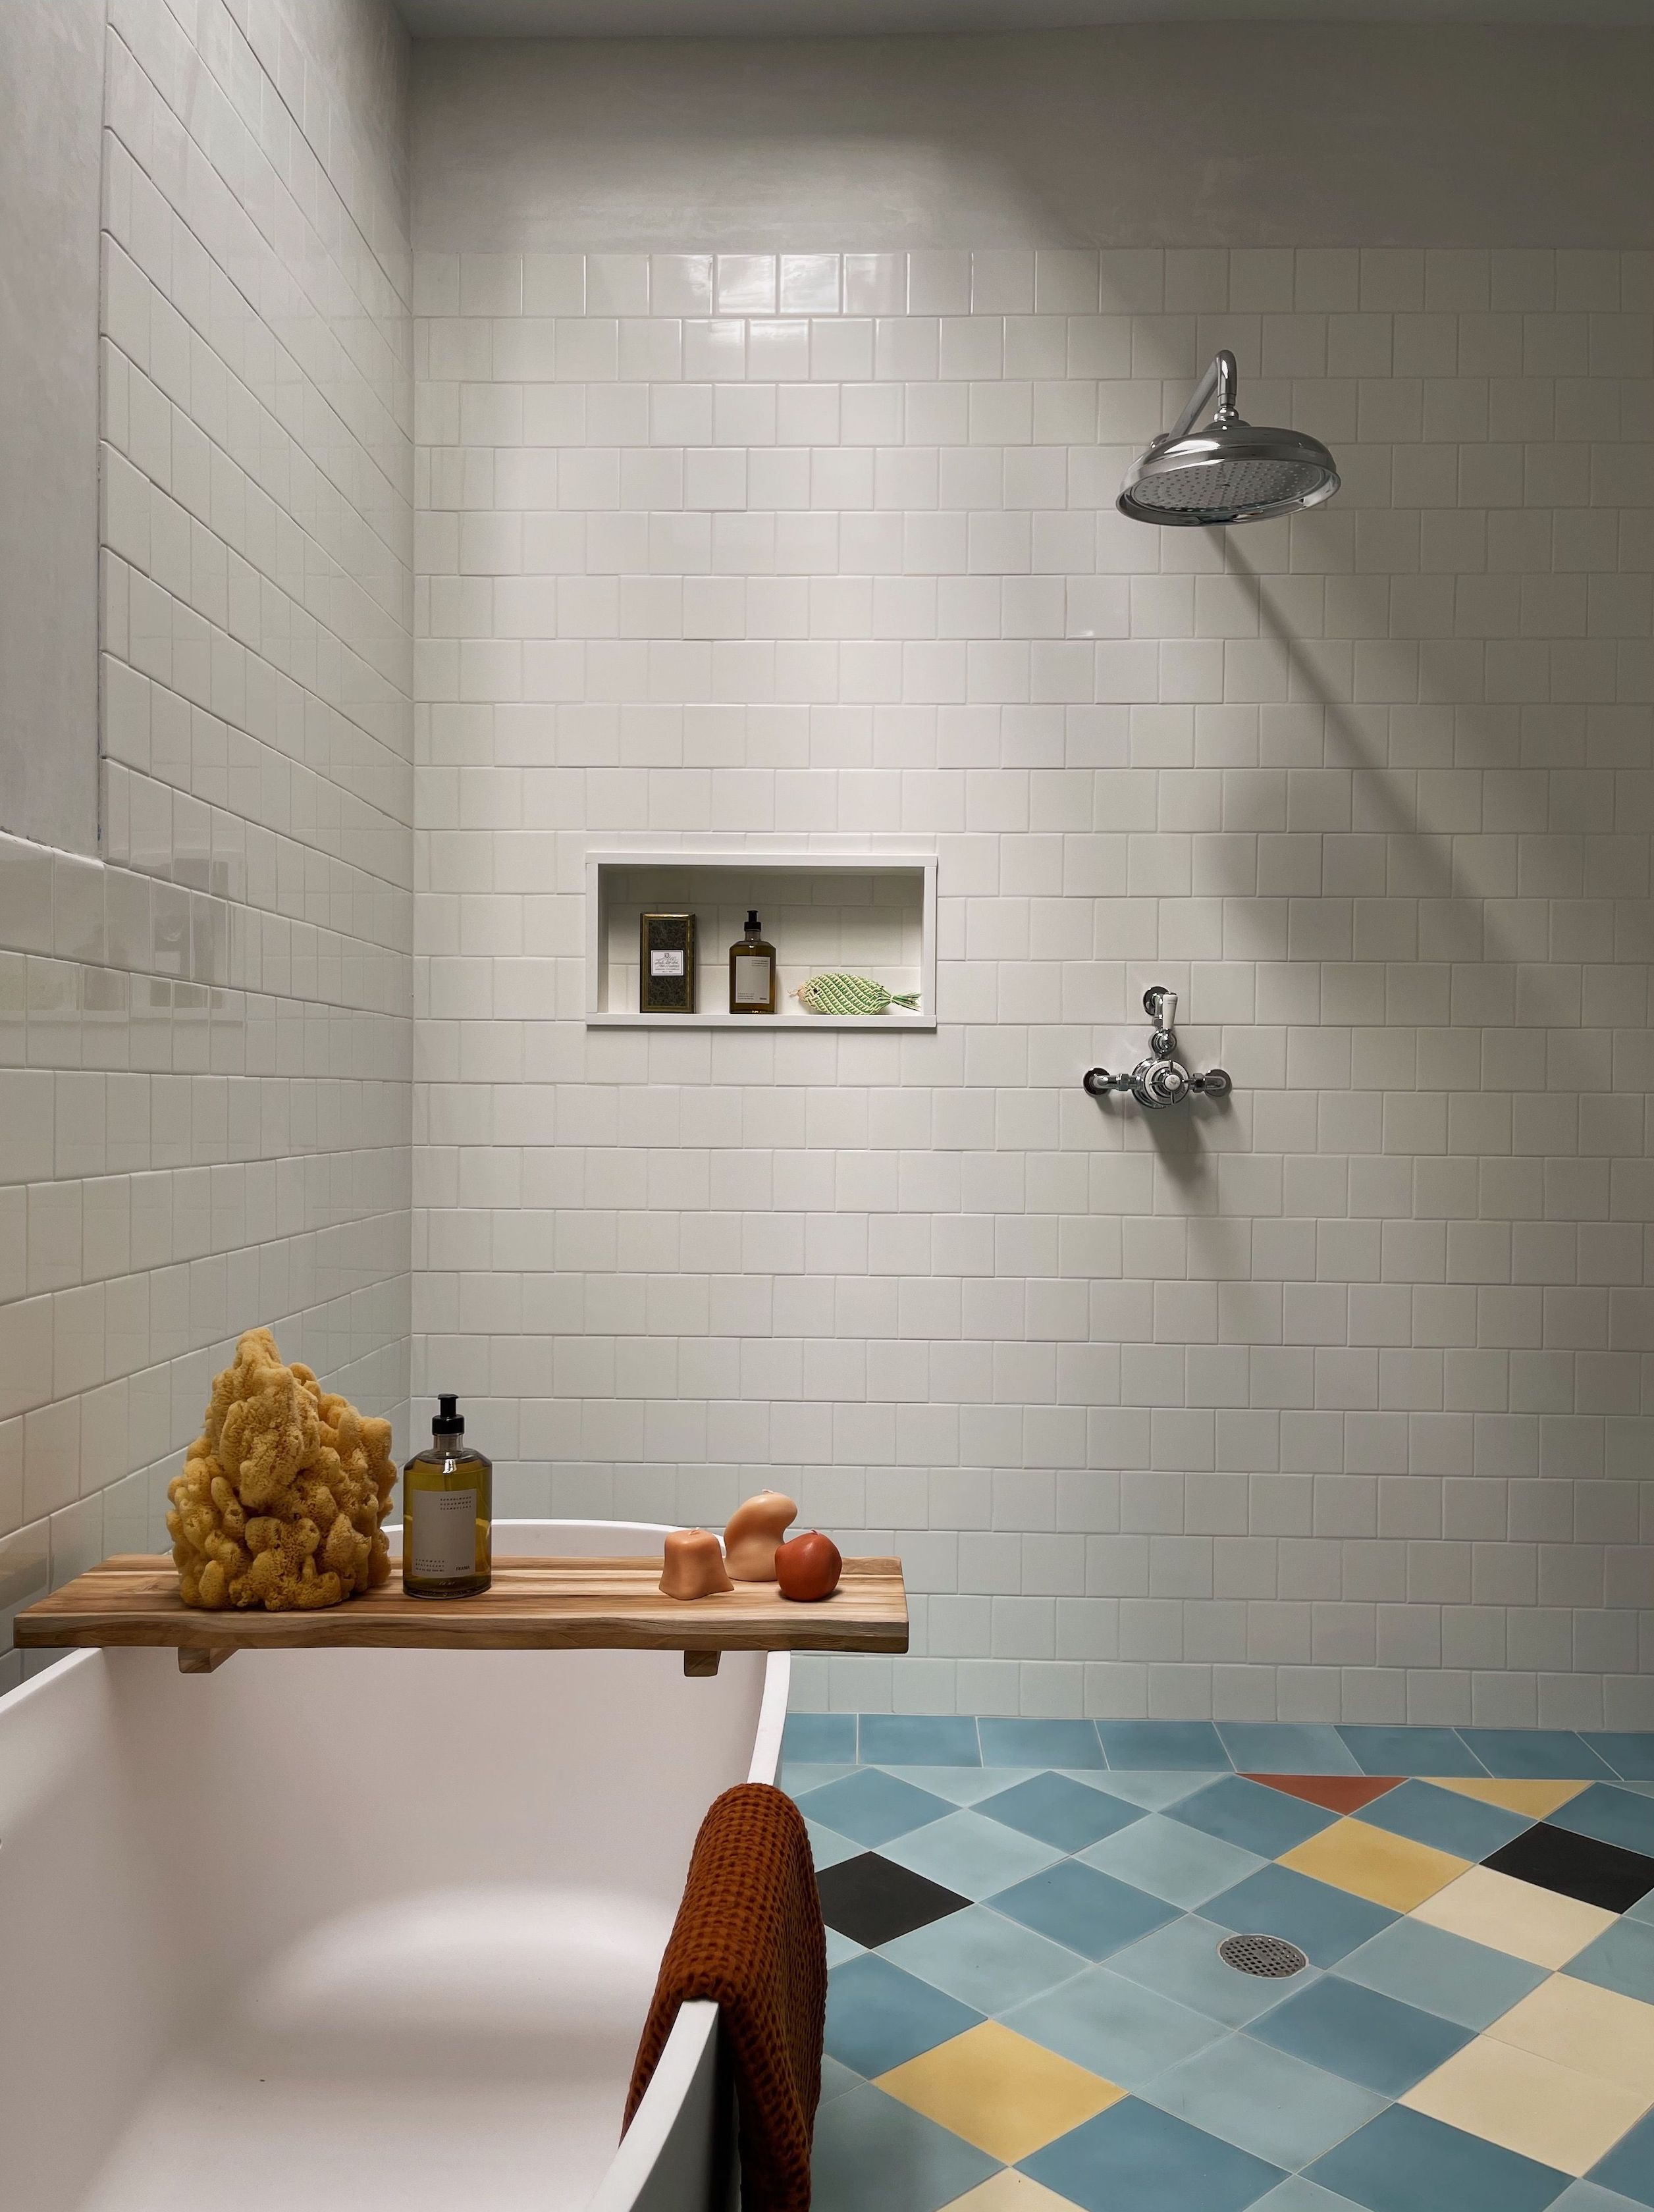 Steal This Look: An Artistic Bath Remodel Inspired by Picasso's Blue Period - Remodelista